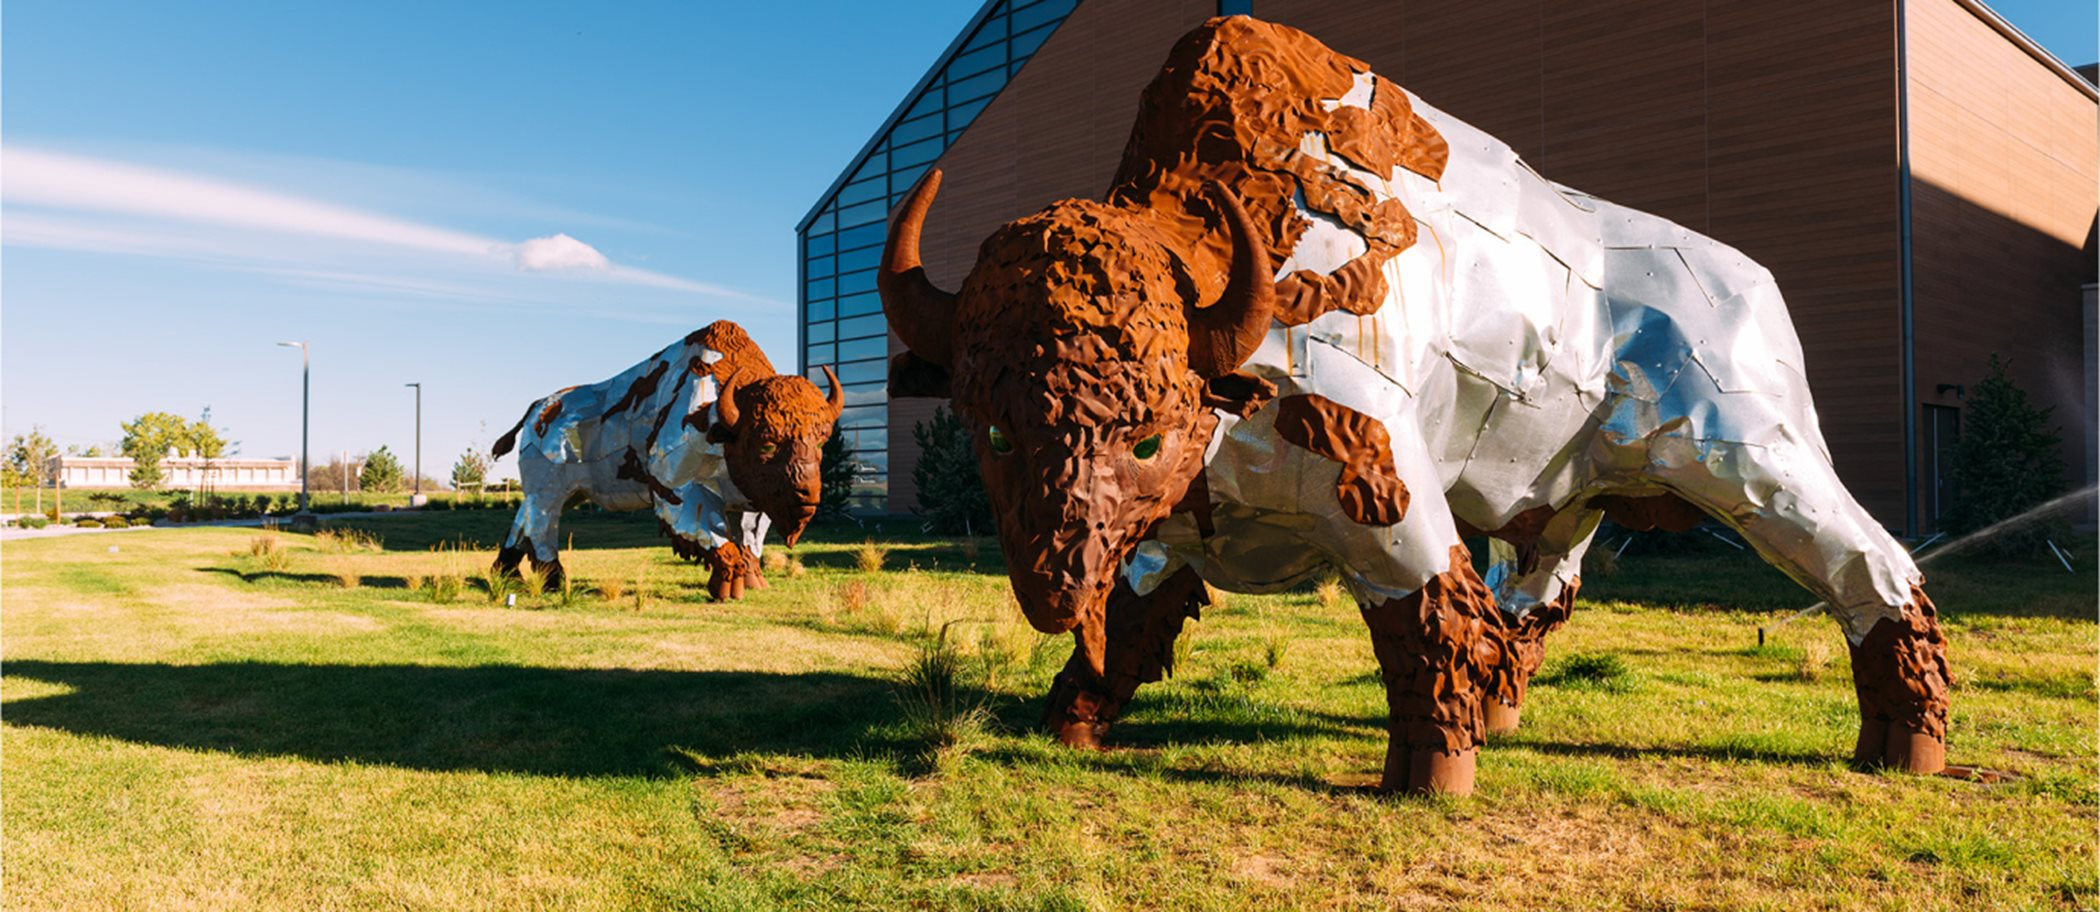 Bison sculpture located in Commerce City, CO